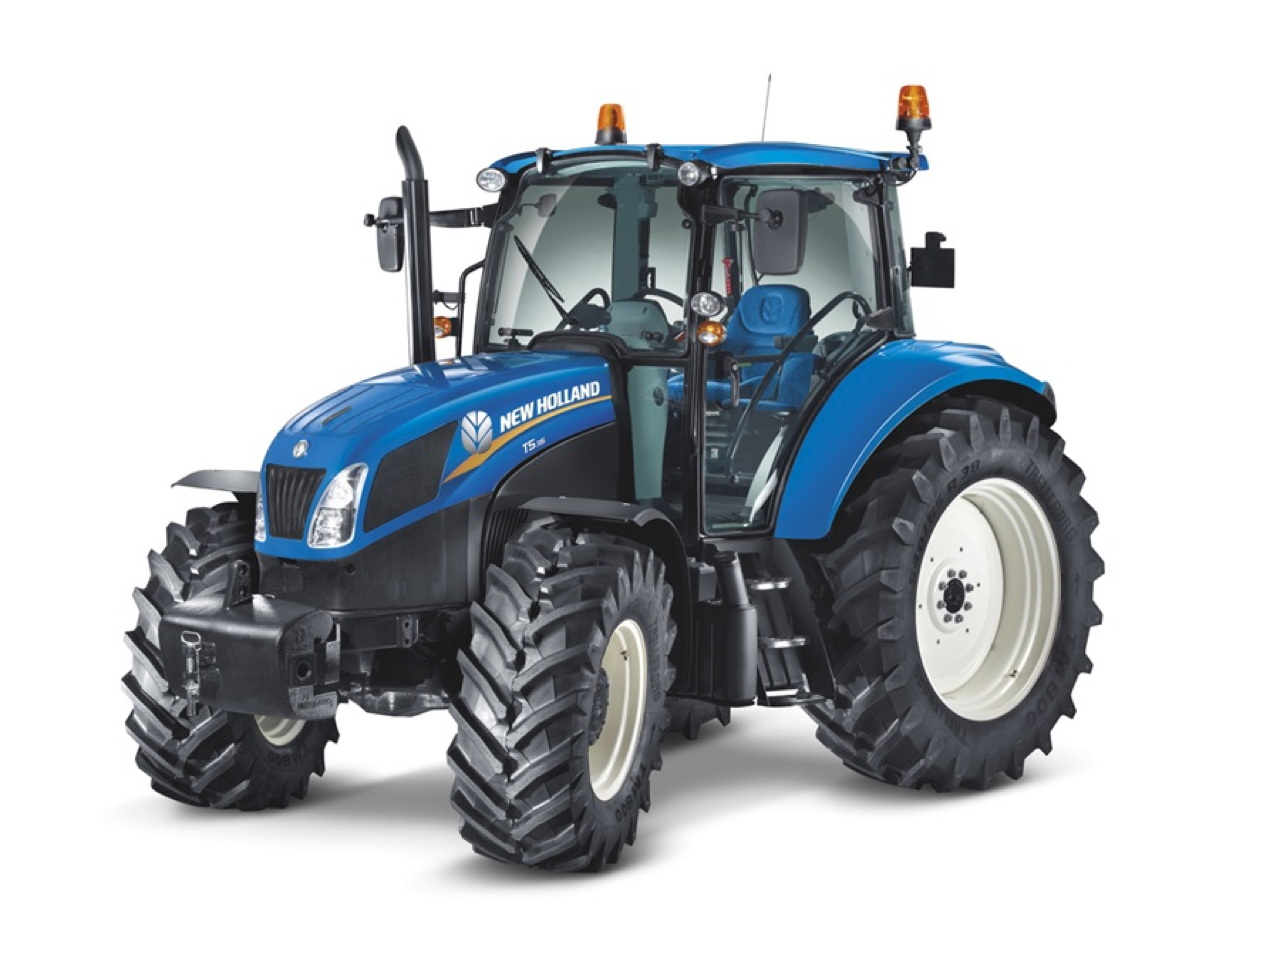 New Holland T5 Utility T5.105 Utility